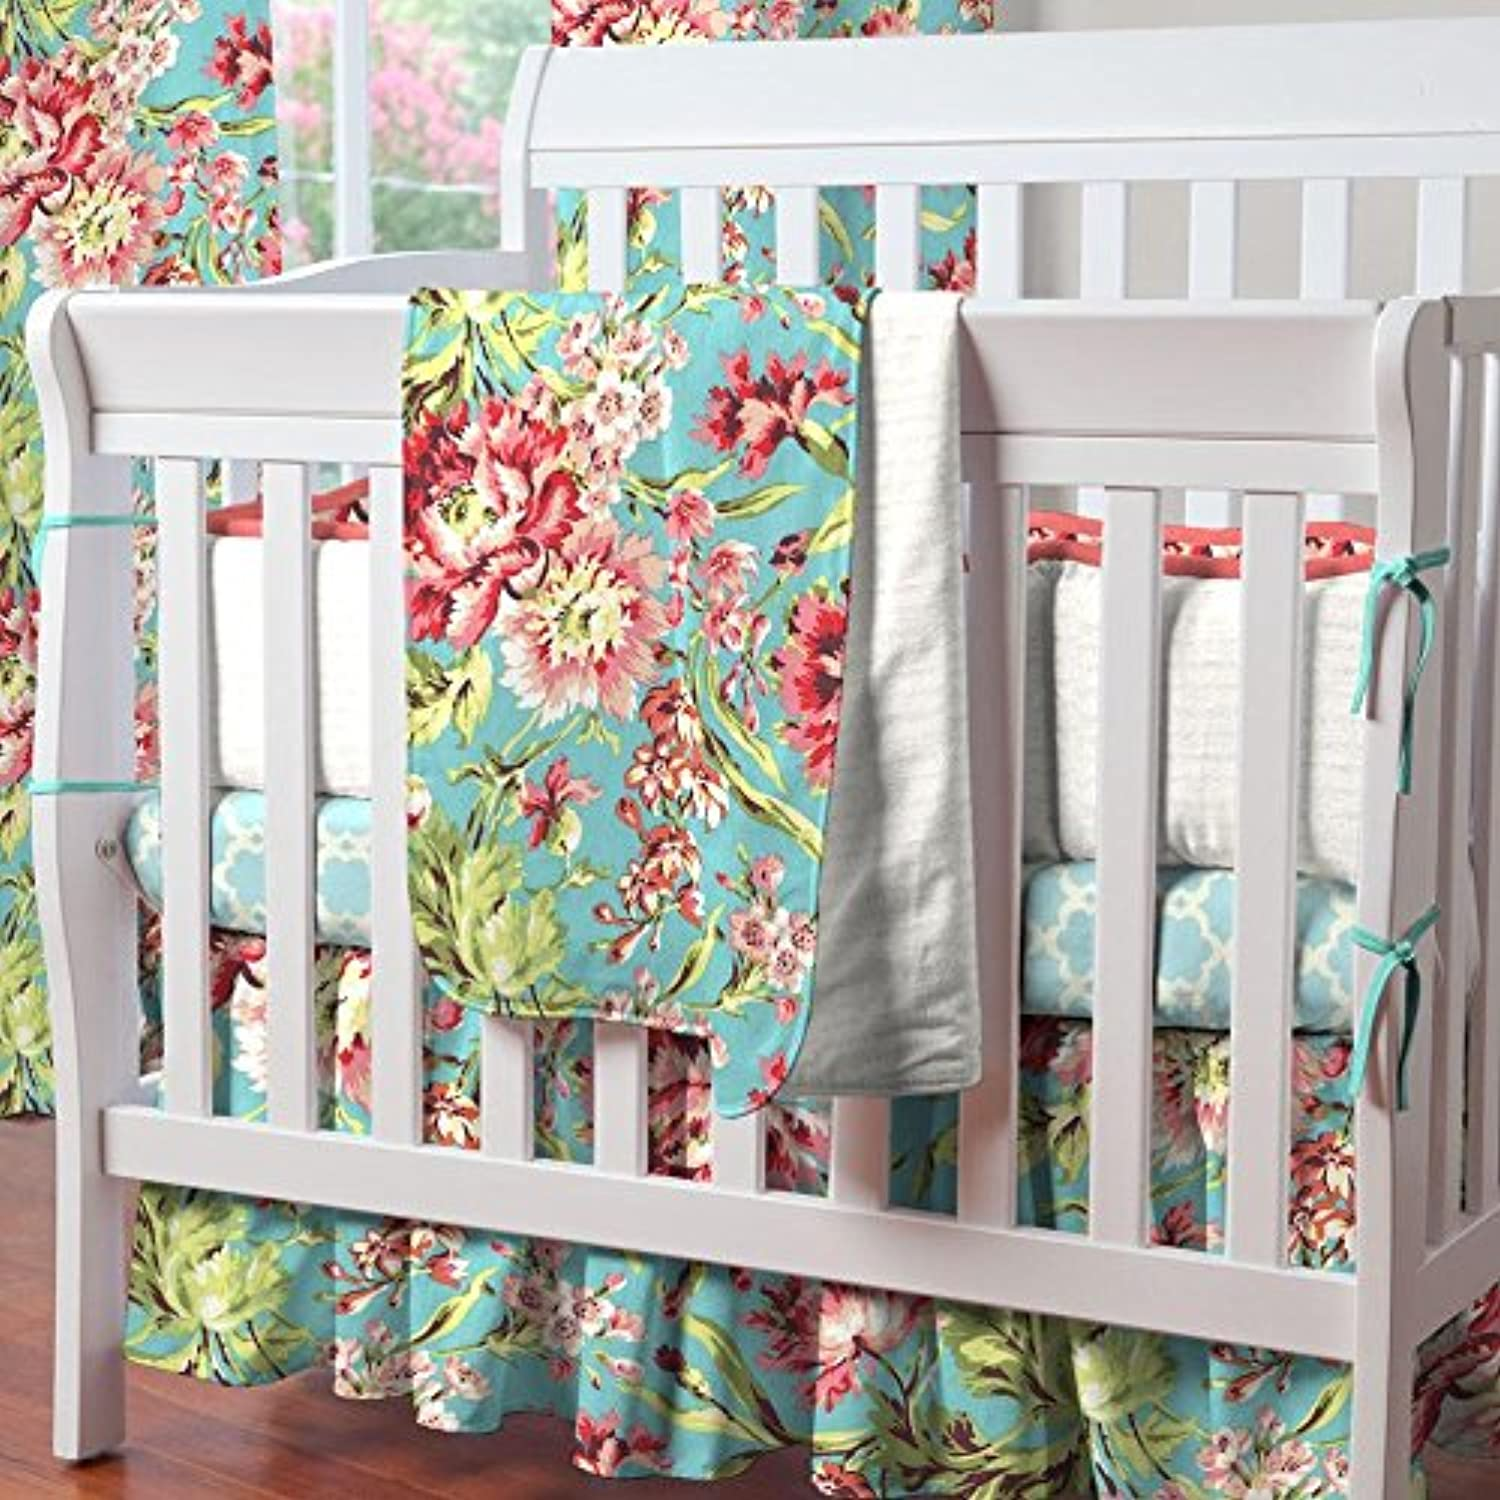 Carousel Designs Coral and Teal Floral Mini Crib Blanket by Carousel Designs